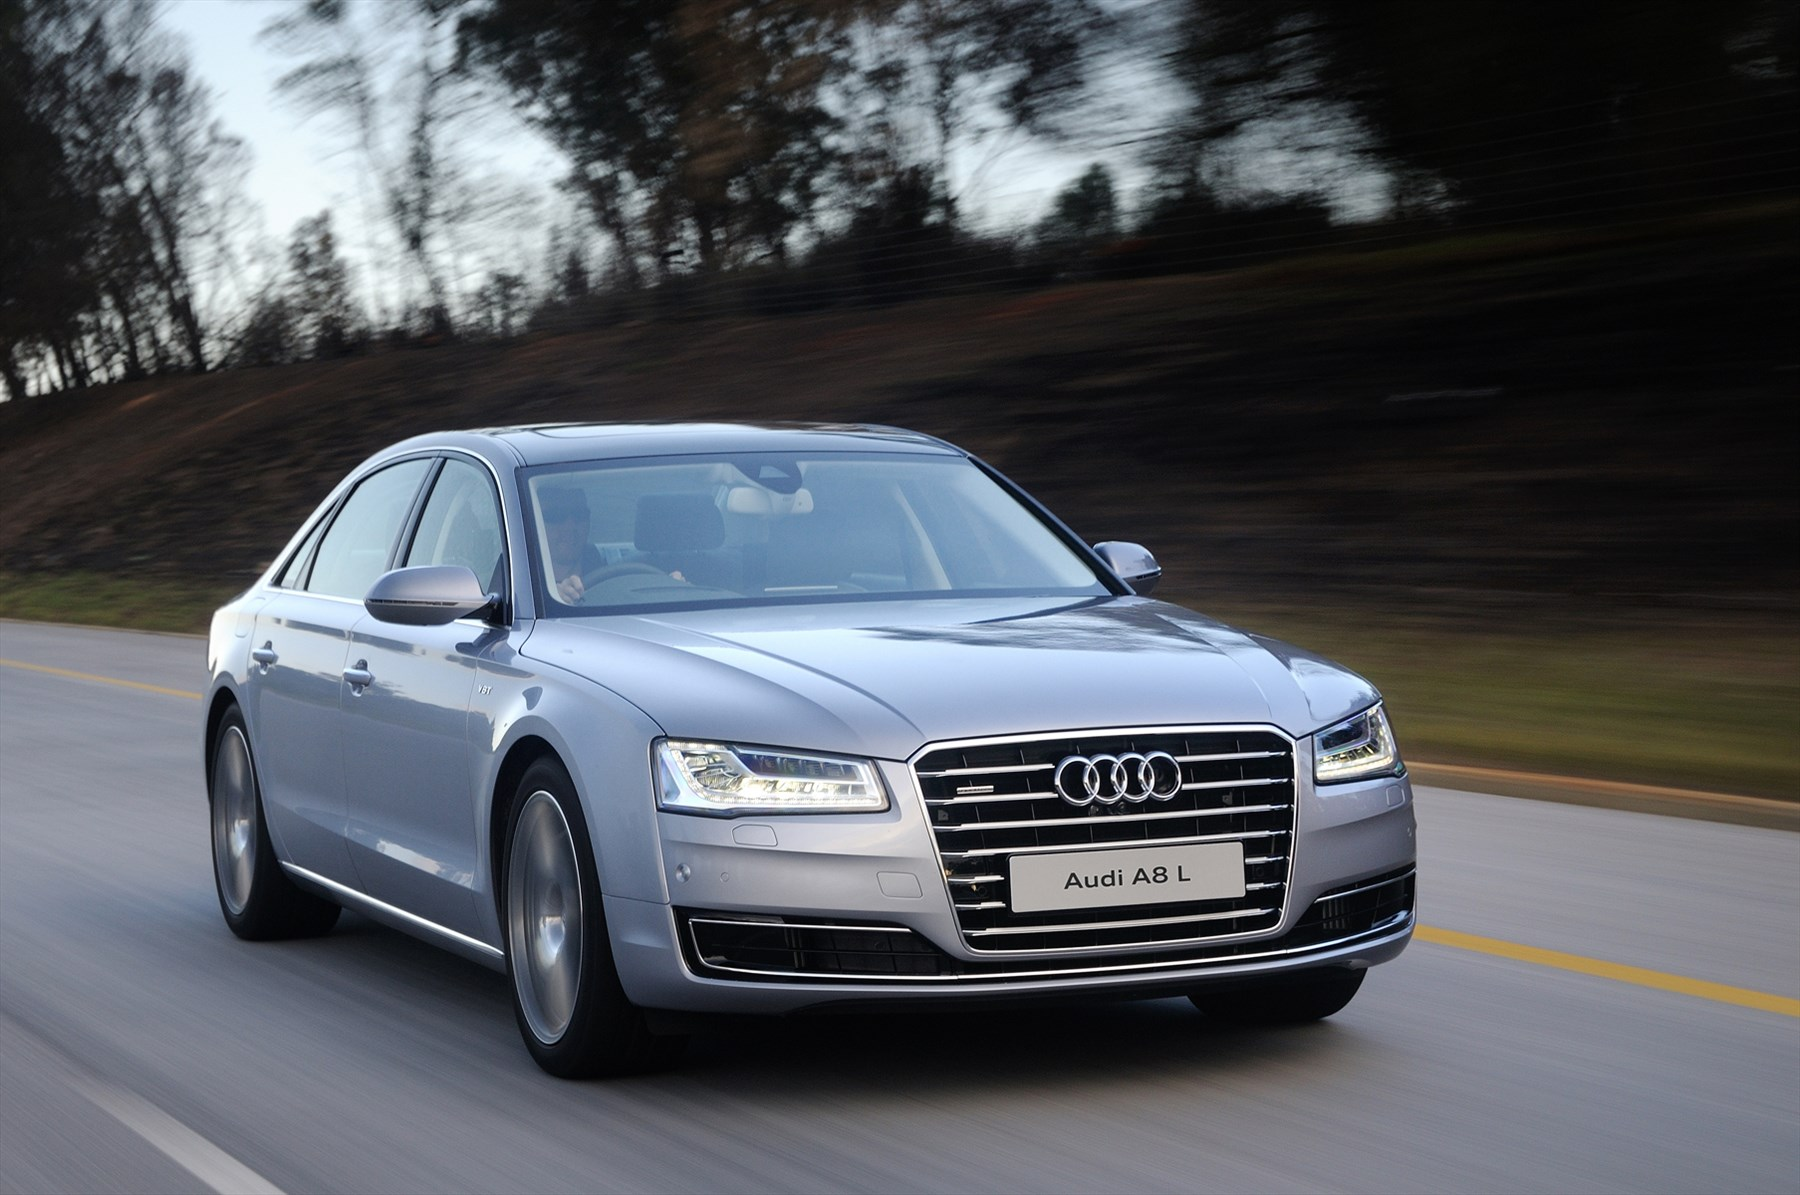 Minor Updates For Audi Flagship: Latest News